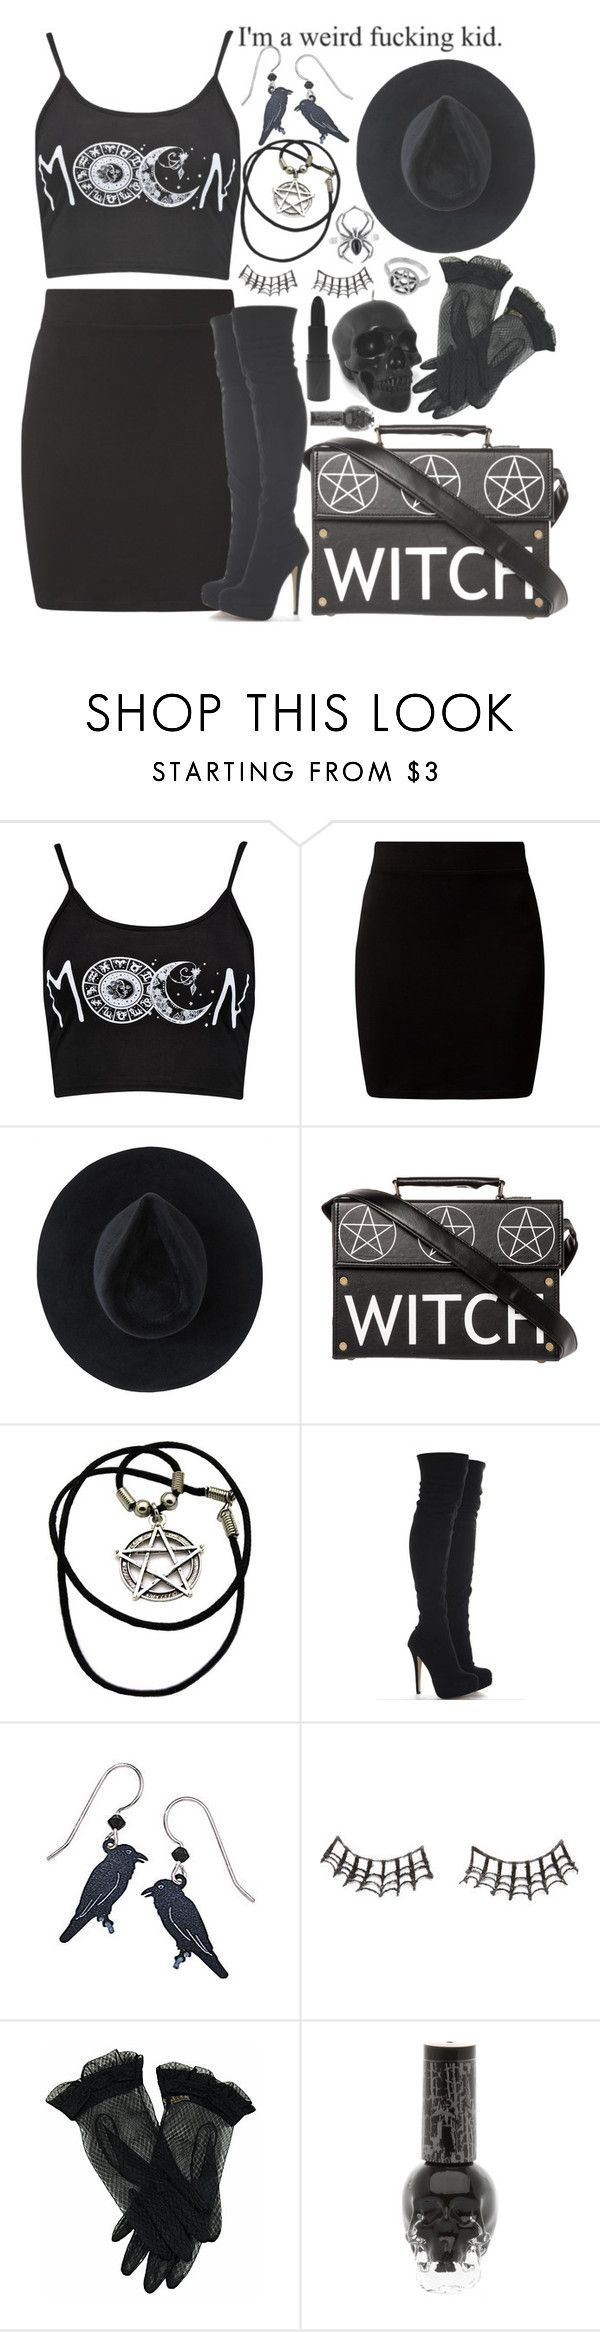 """Modern Witch/Sexy Goth "" by drunk-inlove ❤️ liked on Polyvore featuring New Look, Ryan Roche, Raven Denim, Charlotte Russe, MAKE UP STORE and modern"